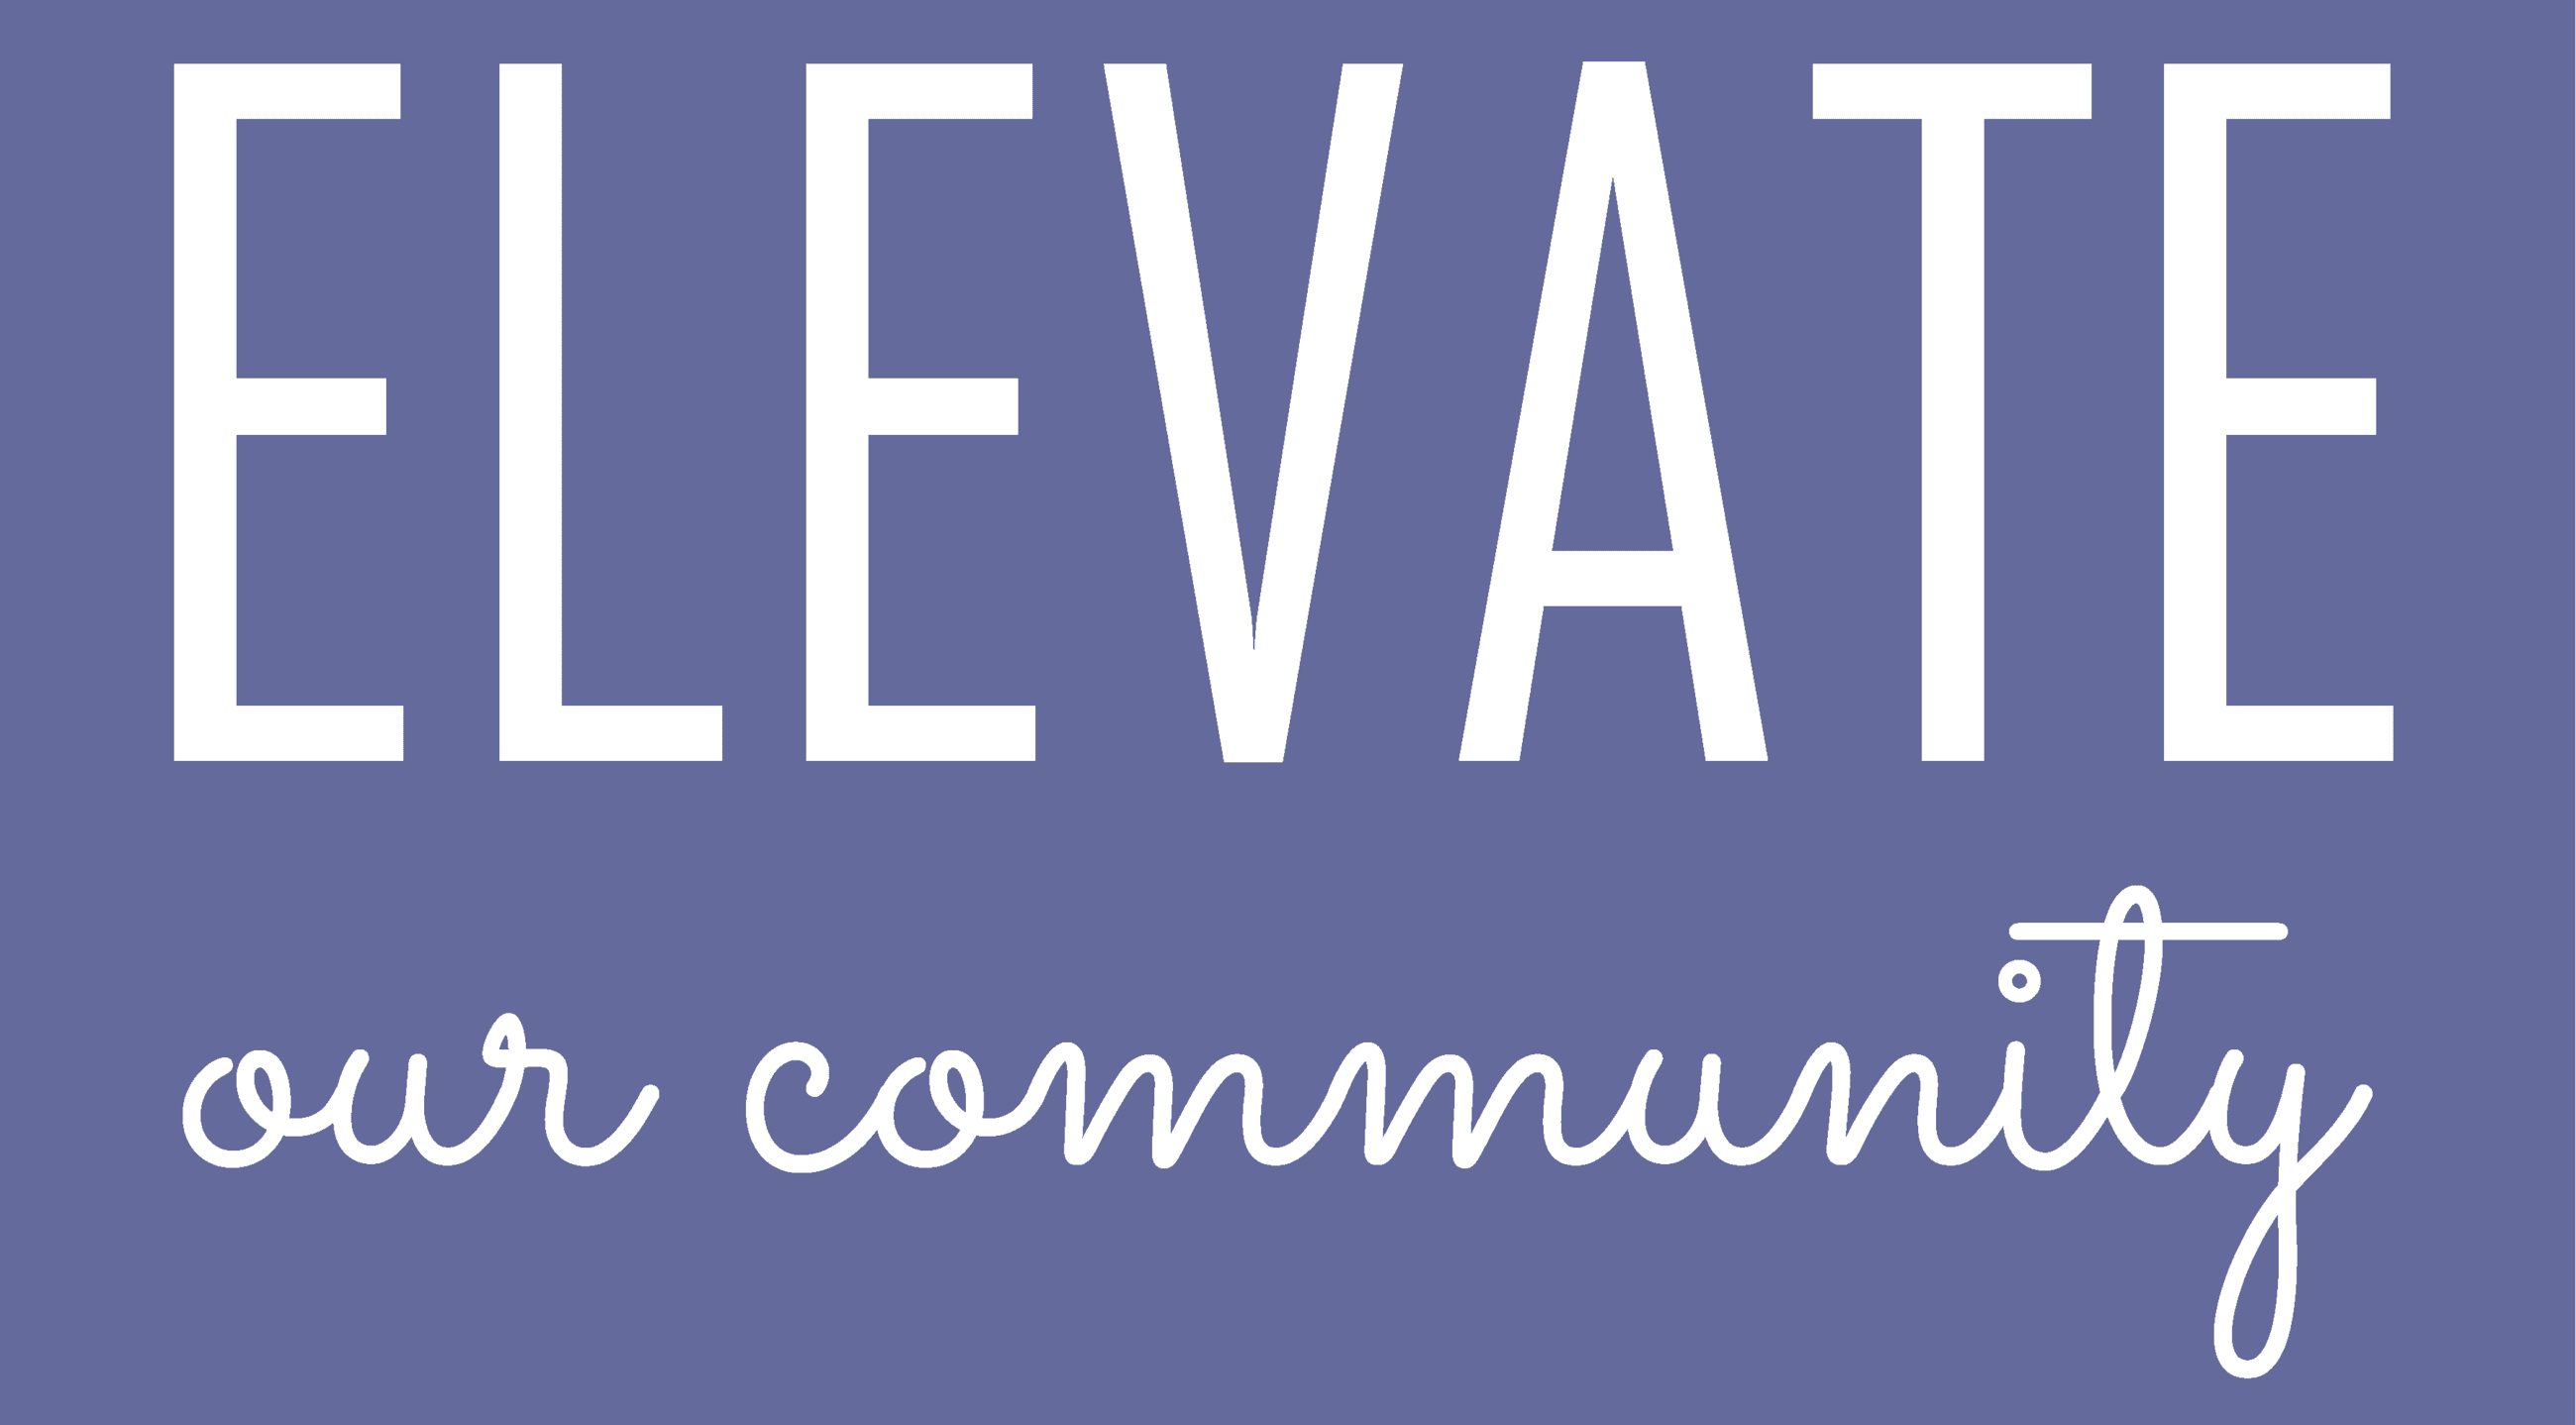 Elevate Our Community_White_Purple Background